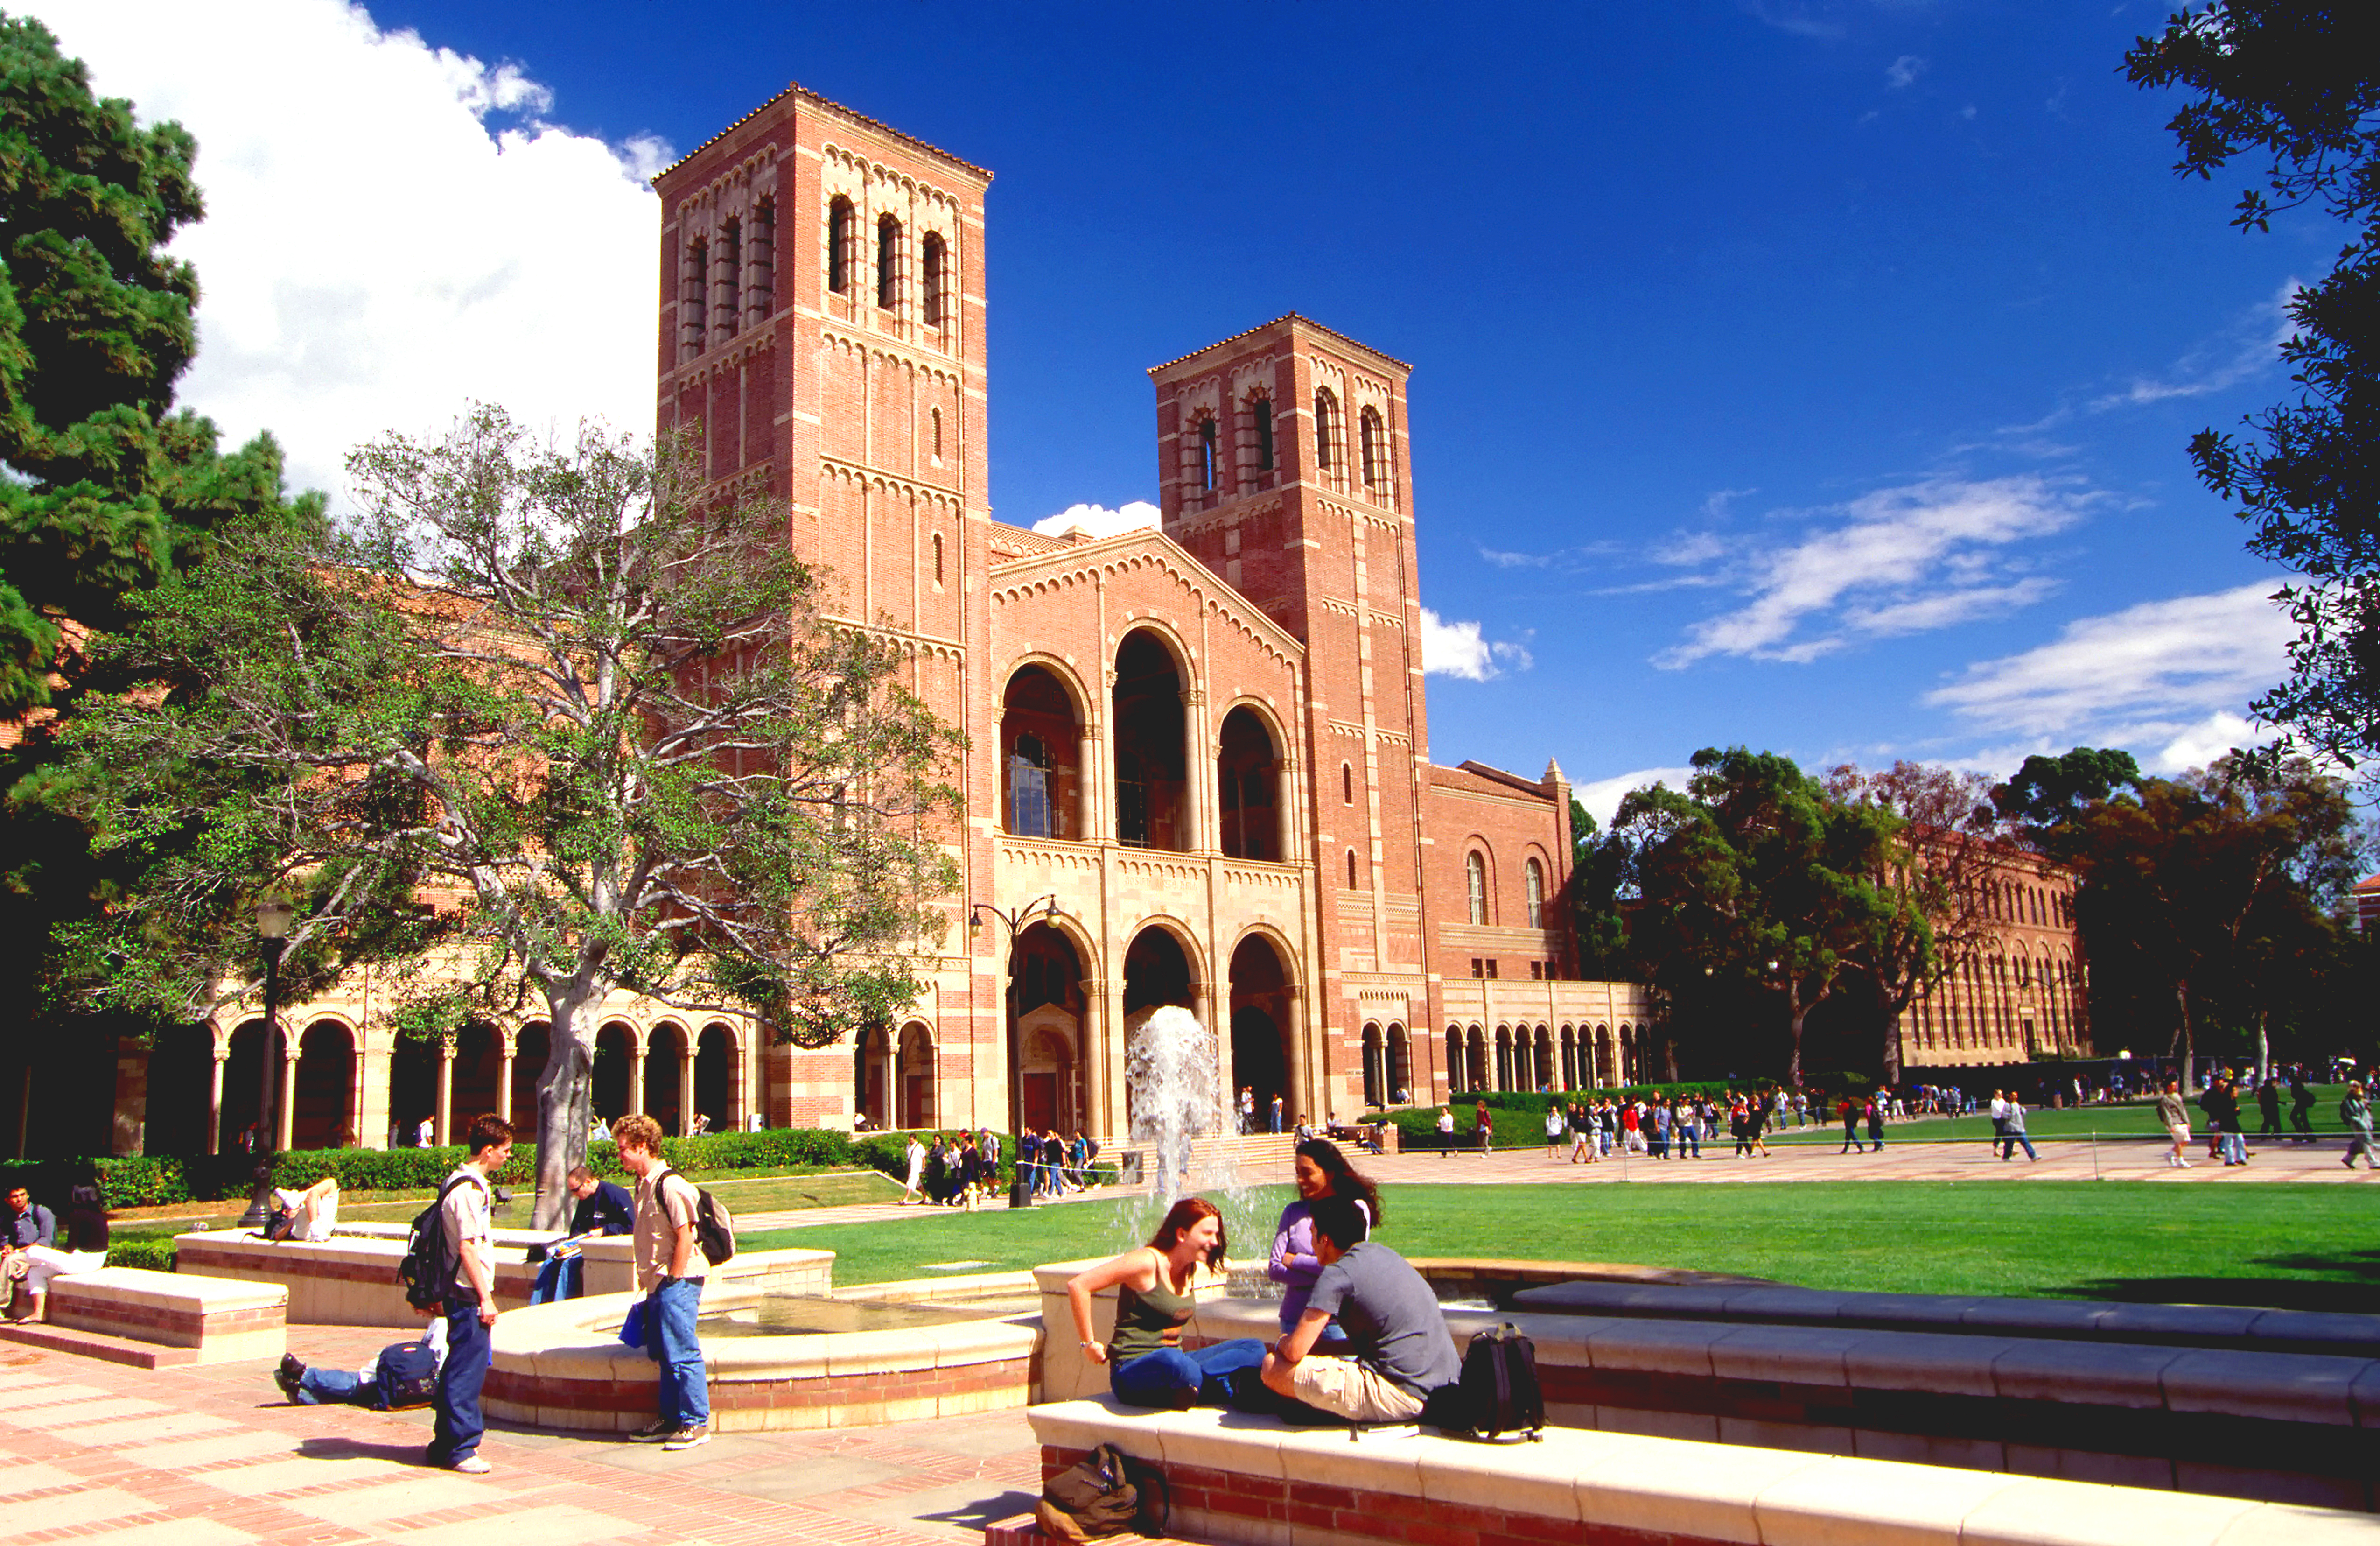 ucla receives more than freshman applications canyon news ucla receives more than 100 000 freshman applications